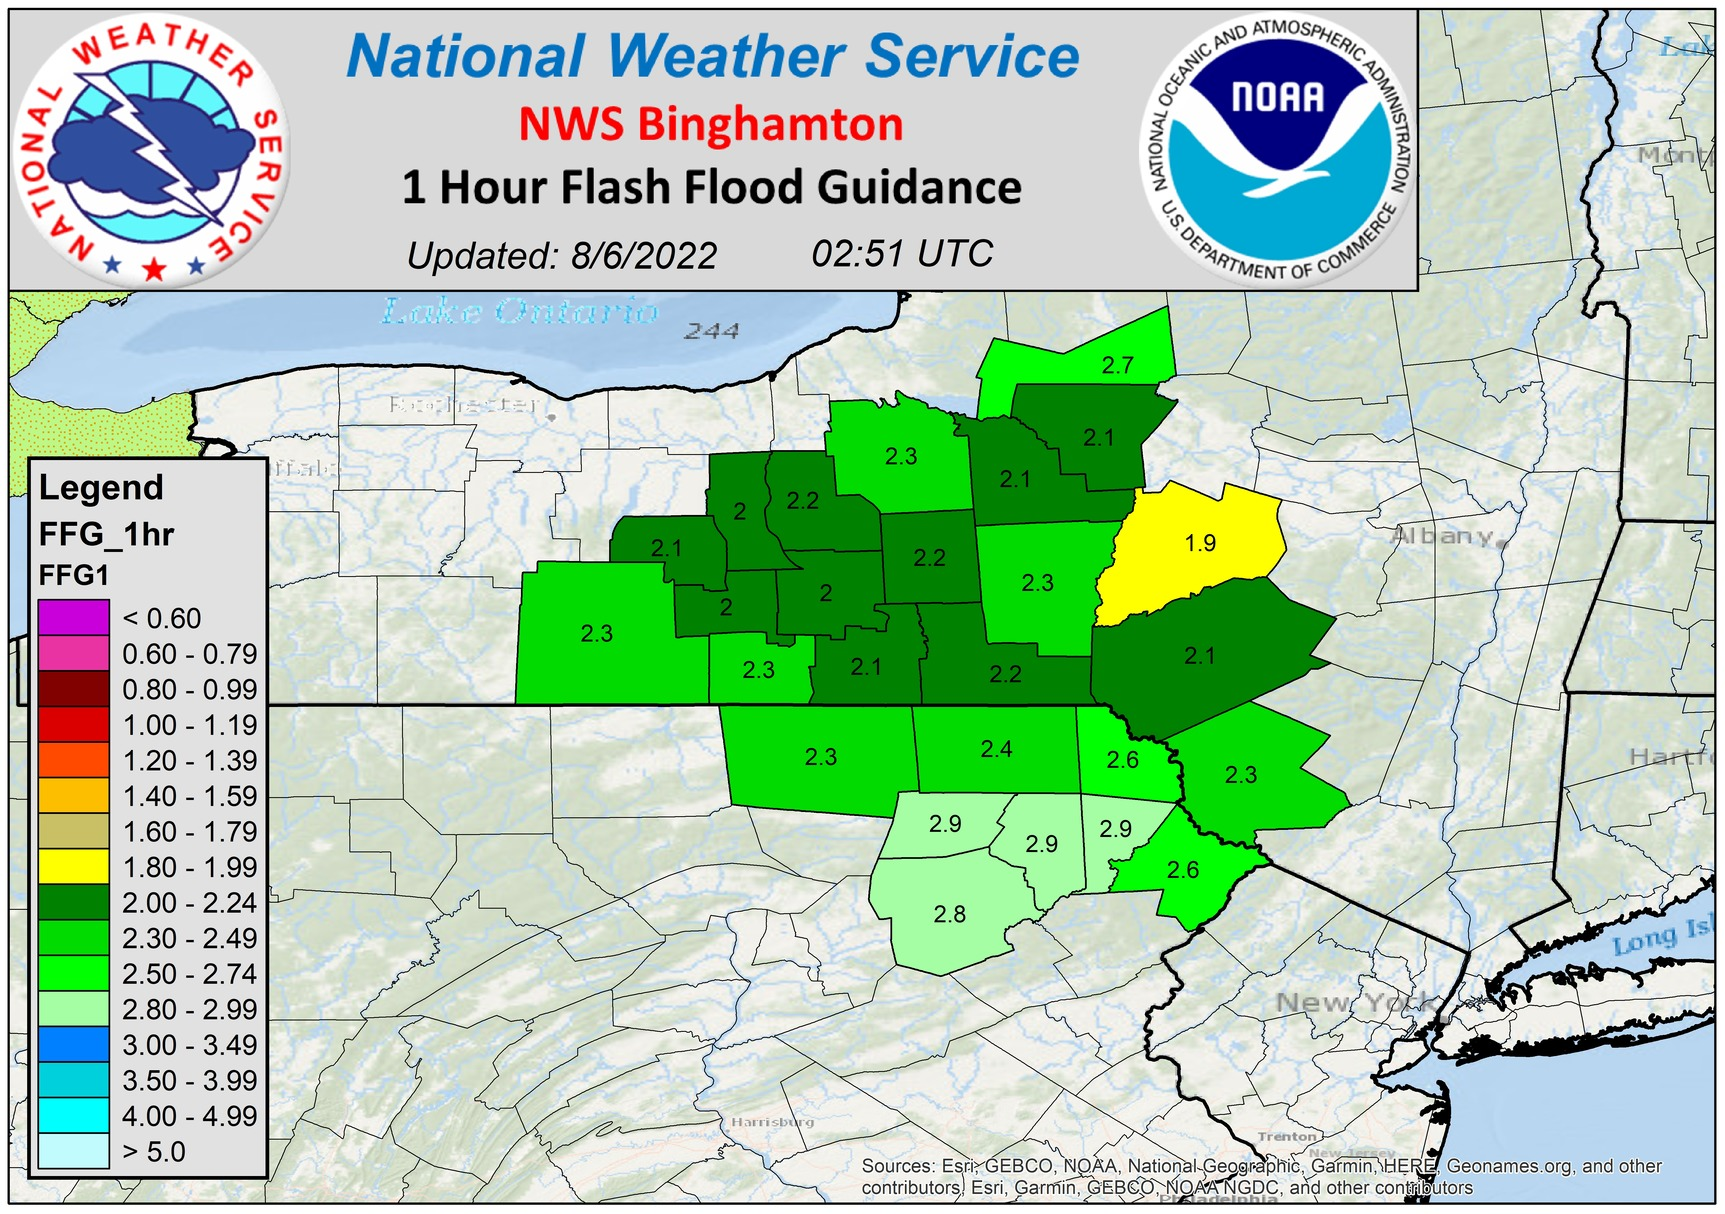 One hour flash flood guidance.